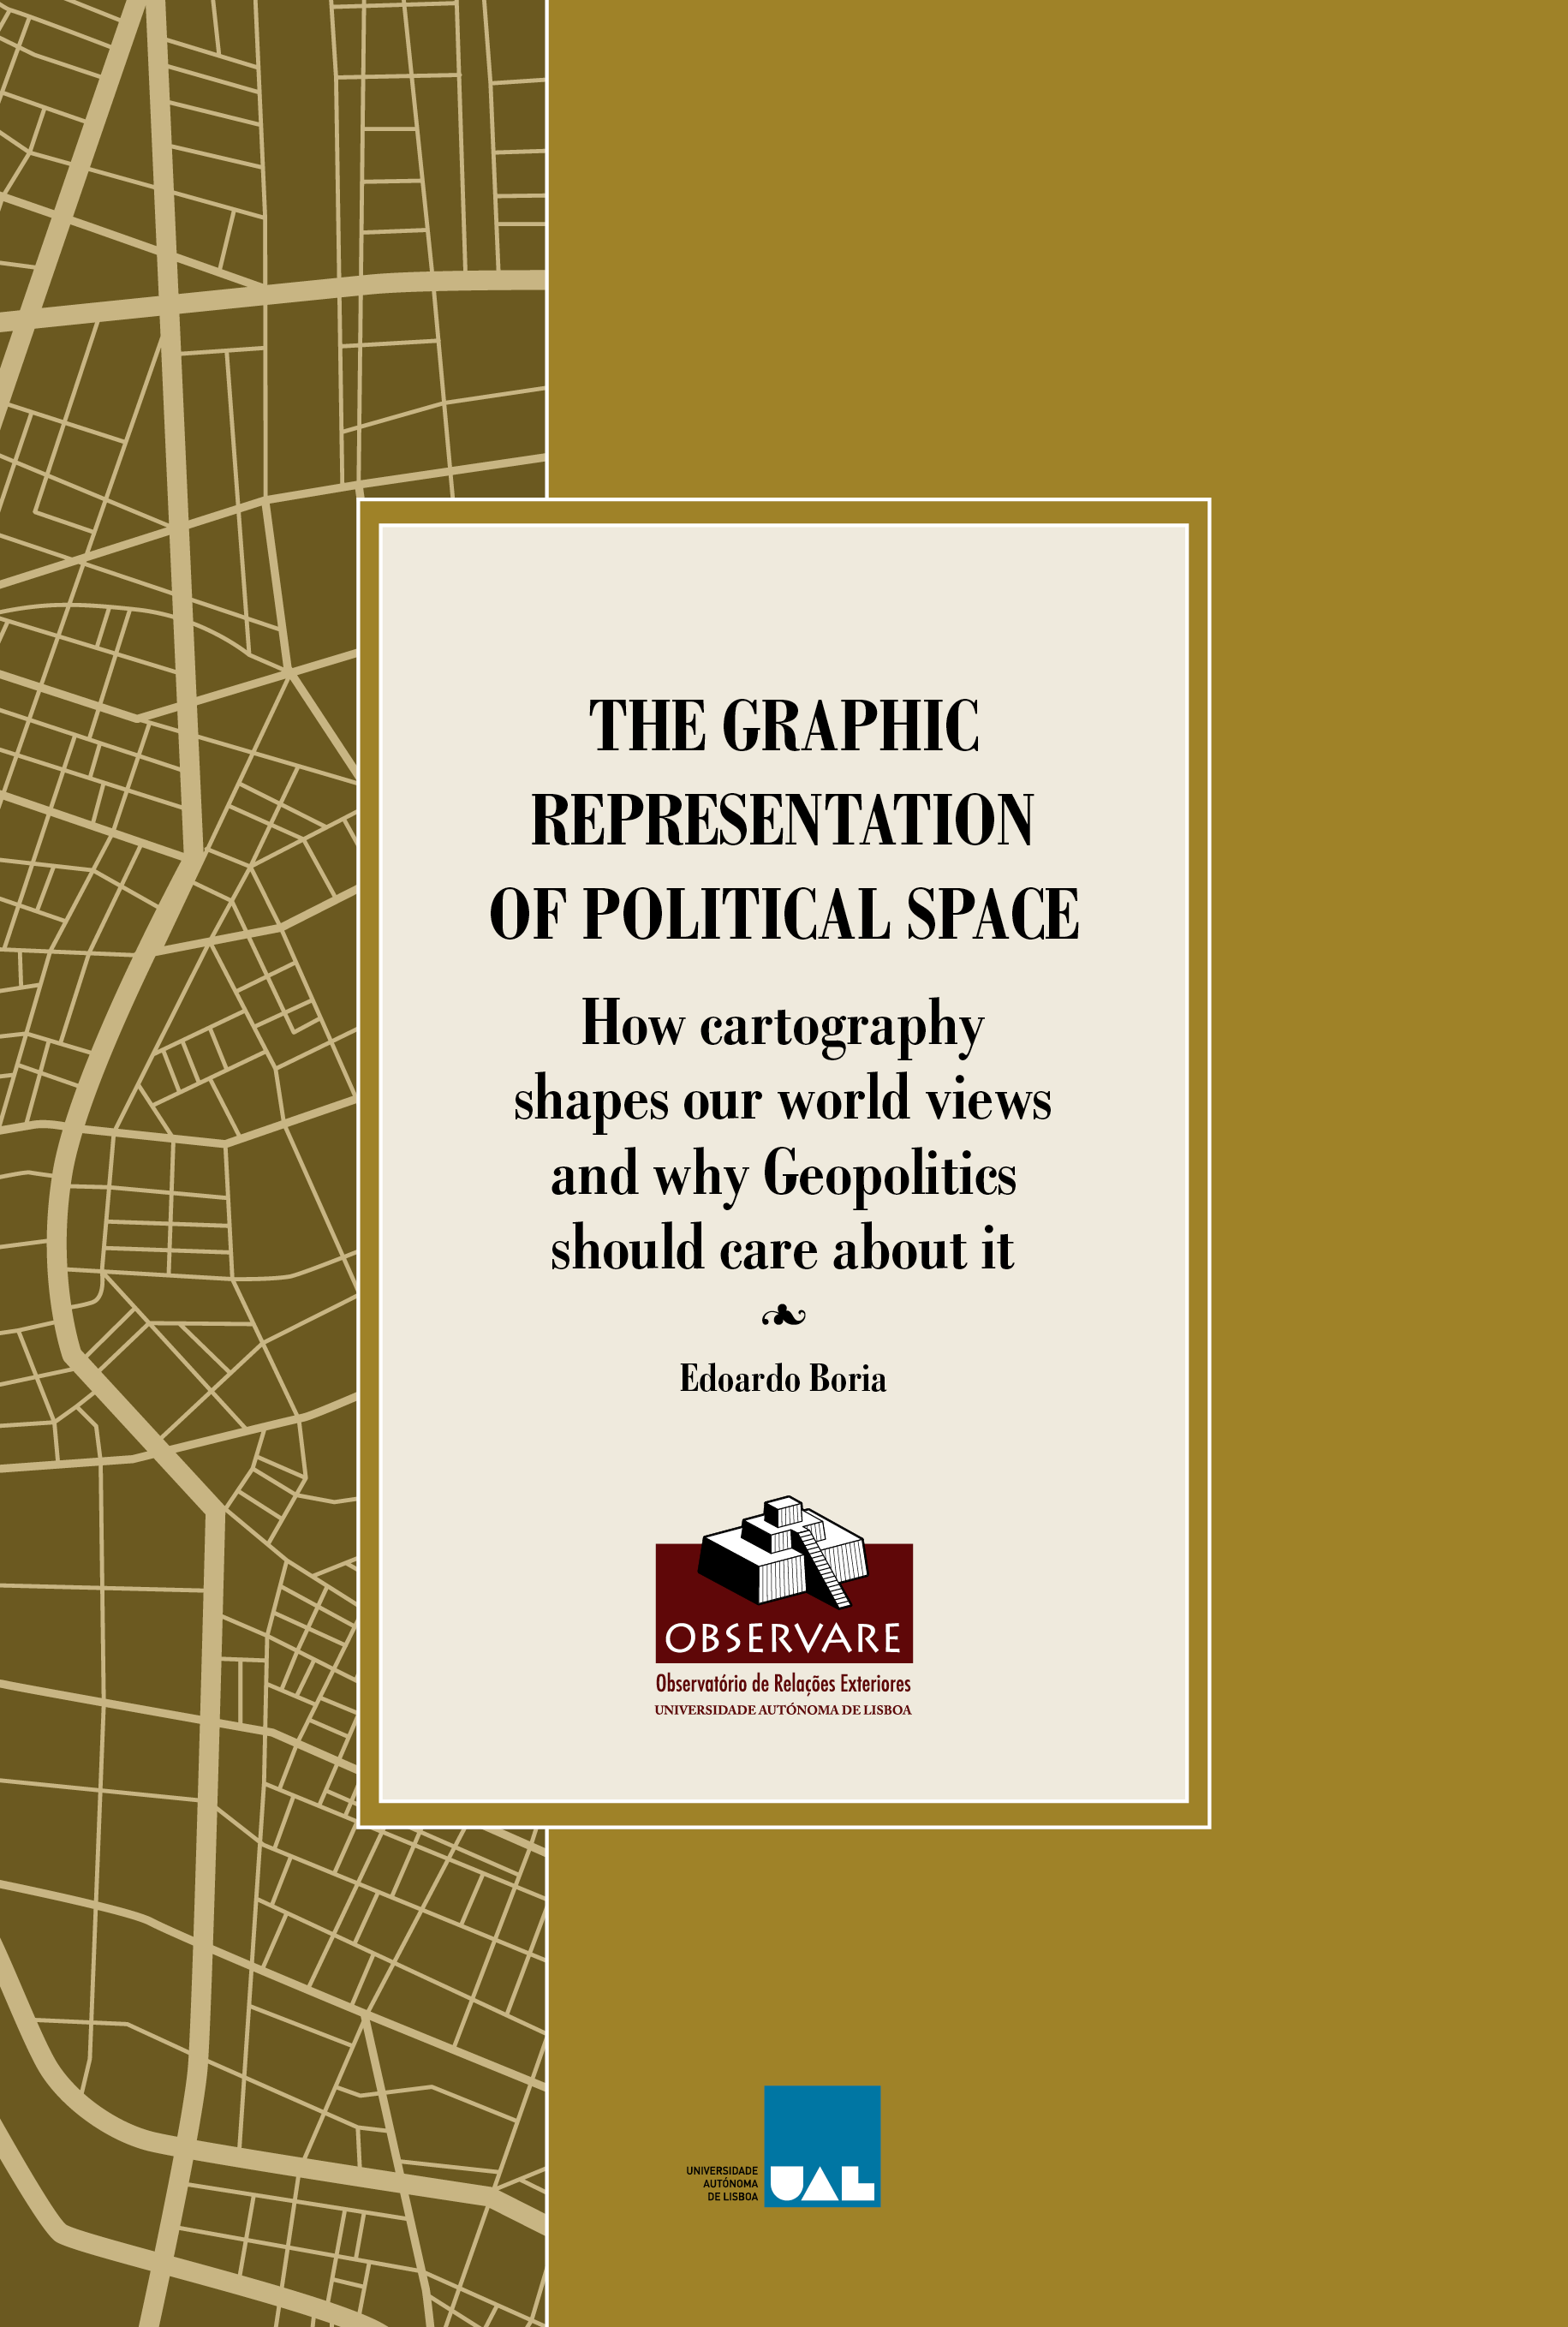 THE GRAPHIC REPRESENTATION OF POLITICAL SPACE. How cartography shapes our world views and why Geopolitics should care about it.